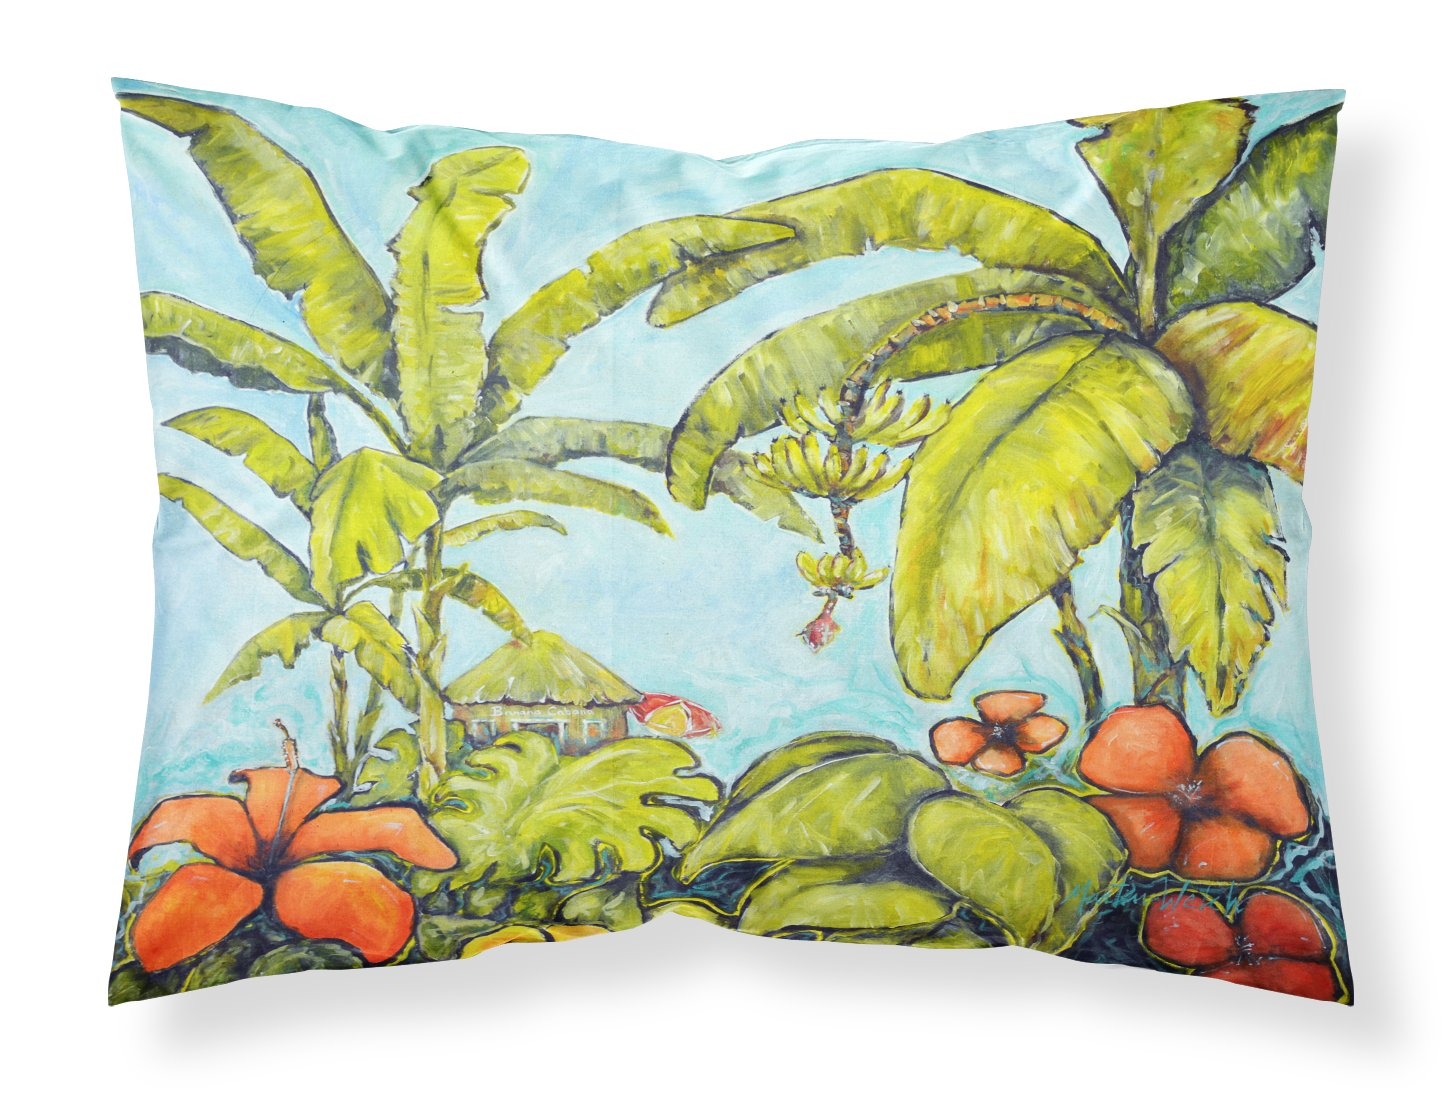 Banana Cabana Fabric Standard Pillowcase MW1268PILLOWCASE by Caroline's Treasures